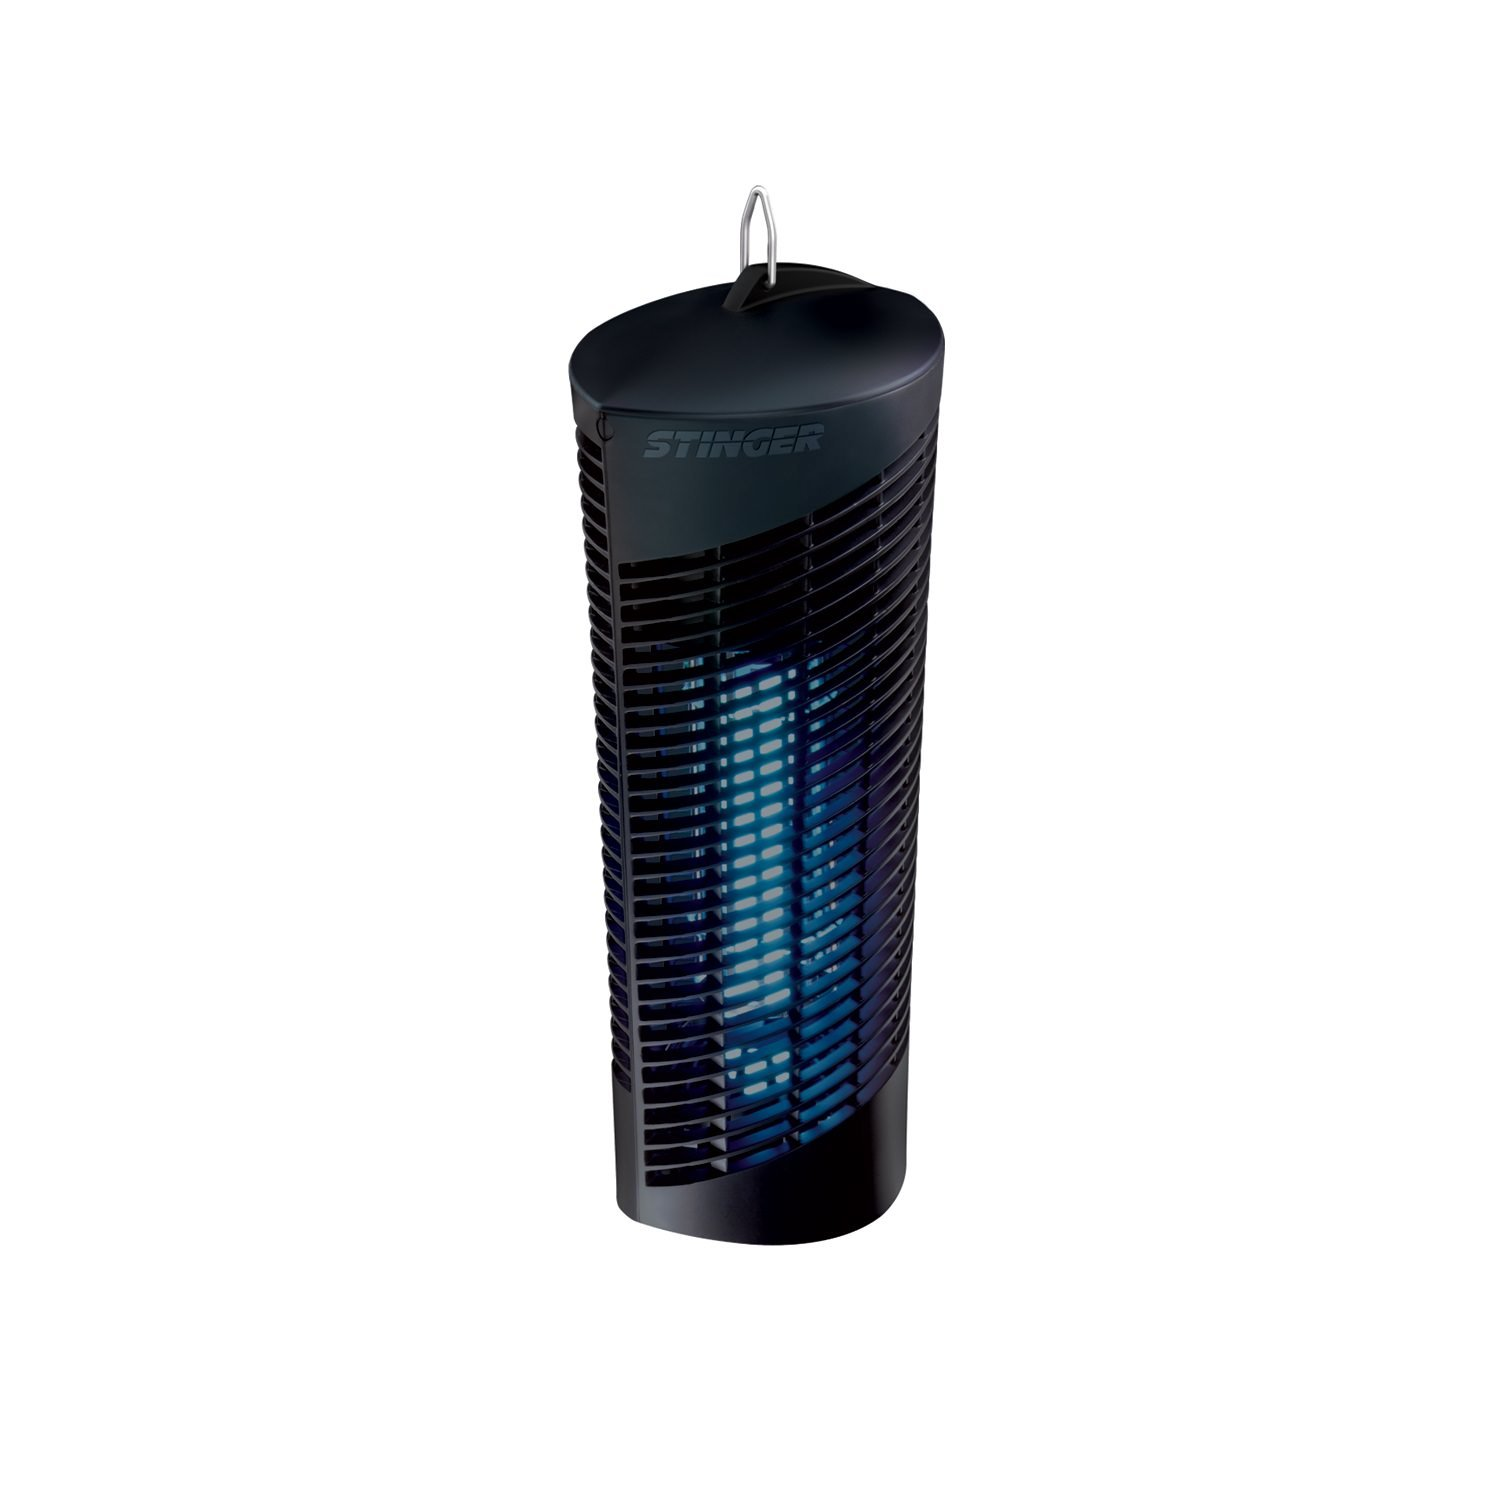 Stinger Insect Zapper (Up to 1 Acre) TV Non-Branded Items BK100